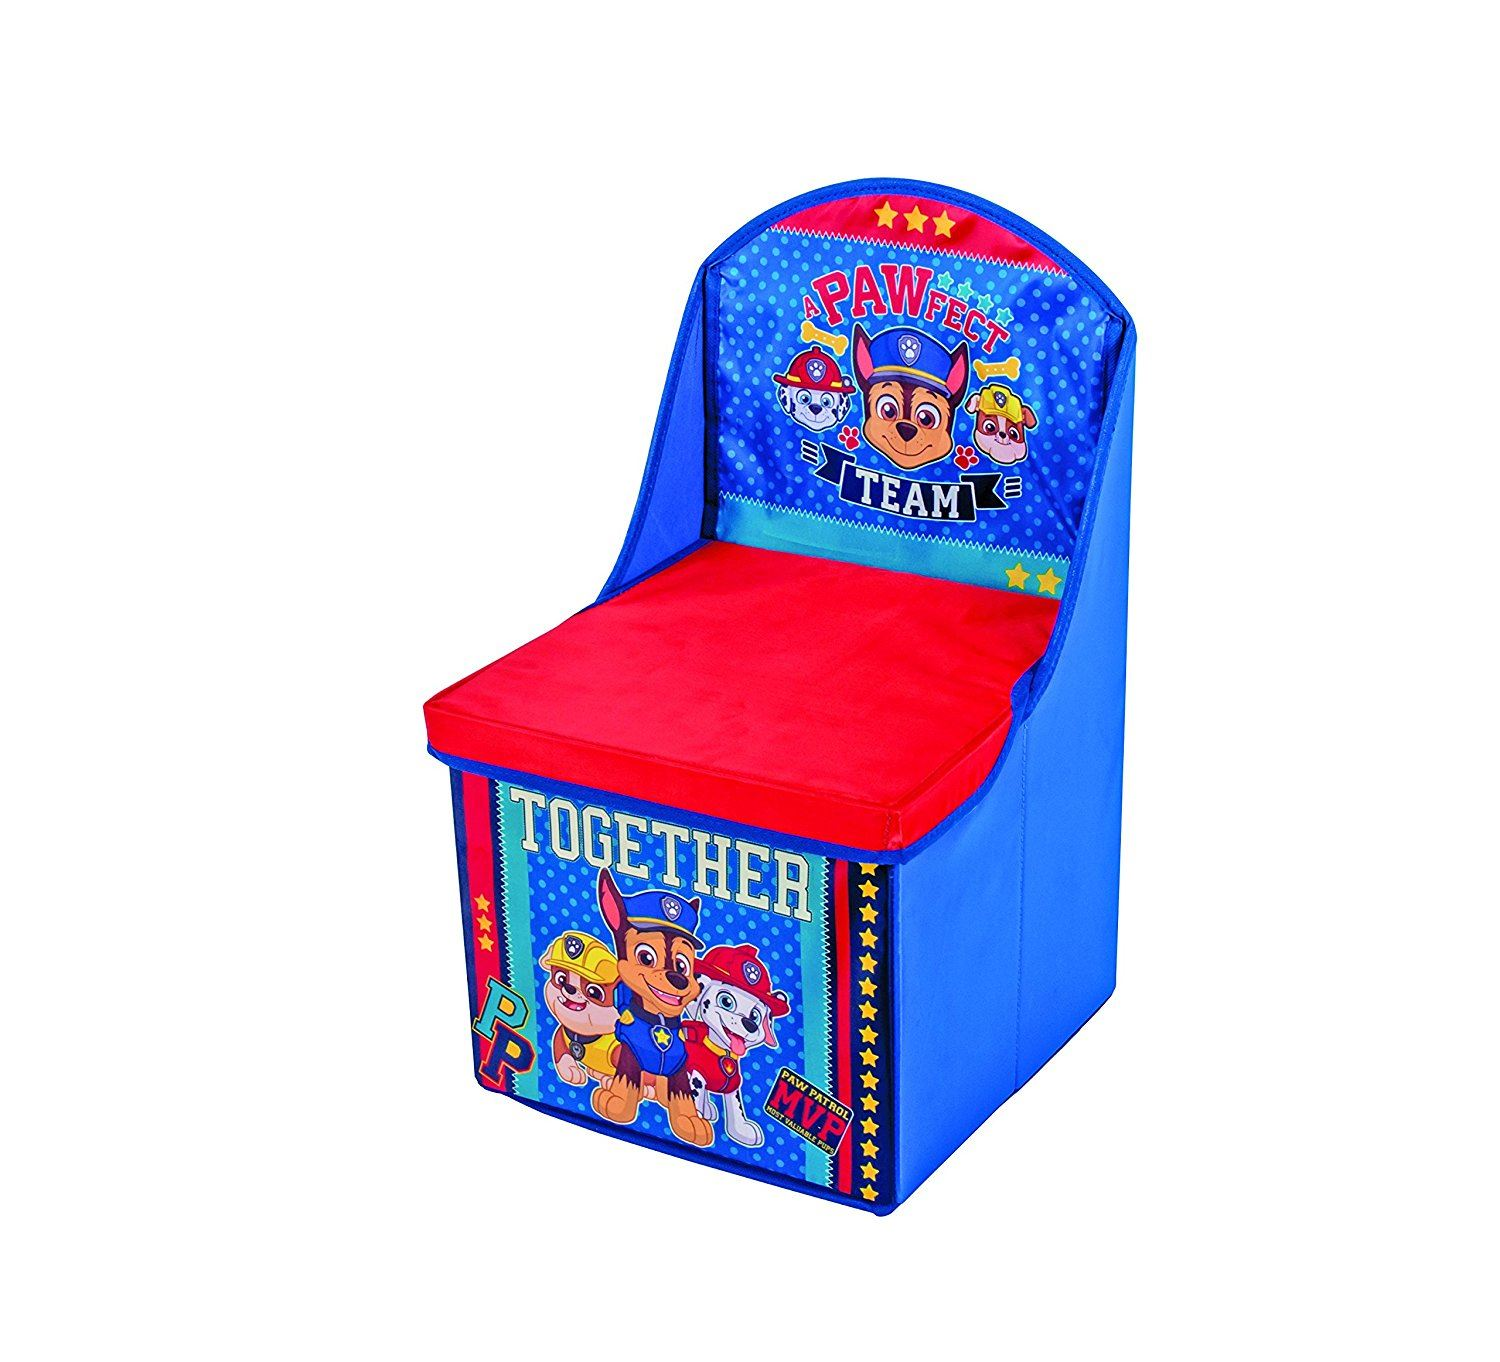 storage box chair philippines fisher price pink bouncer paw patrol toys foldable chest pop up